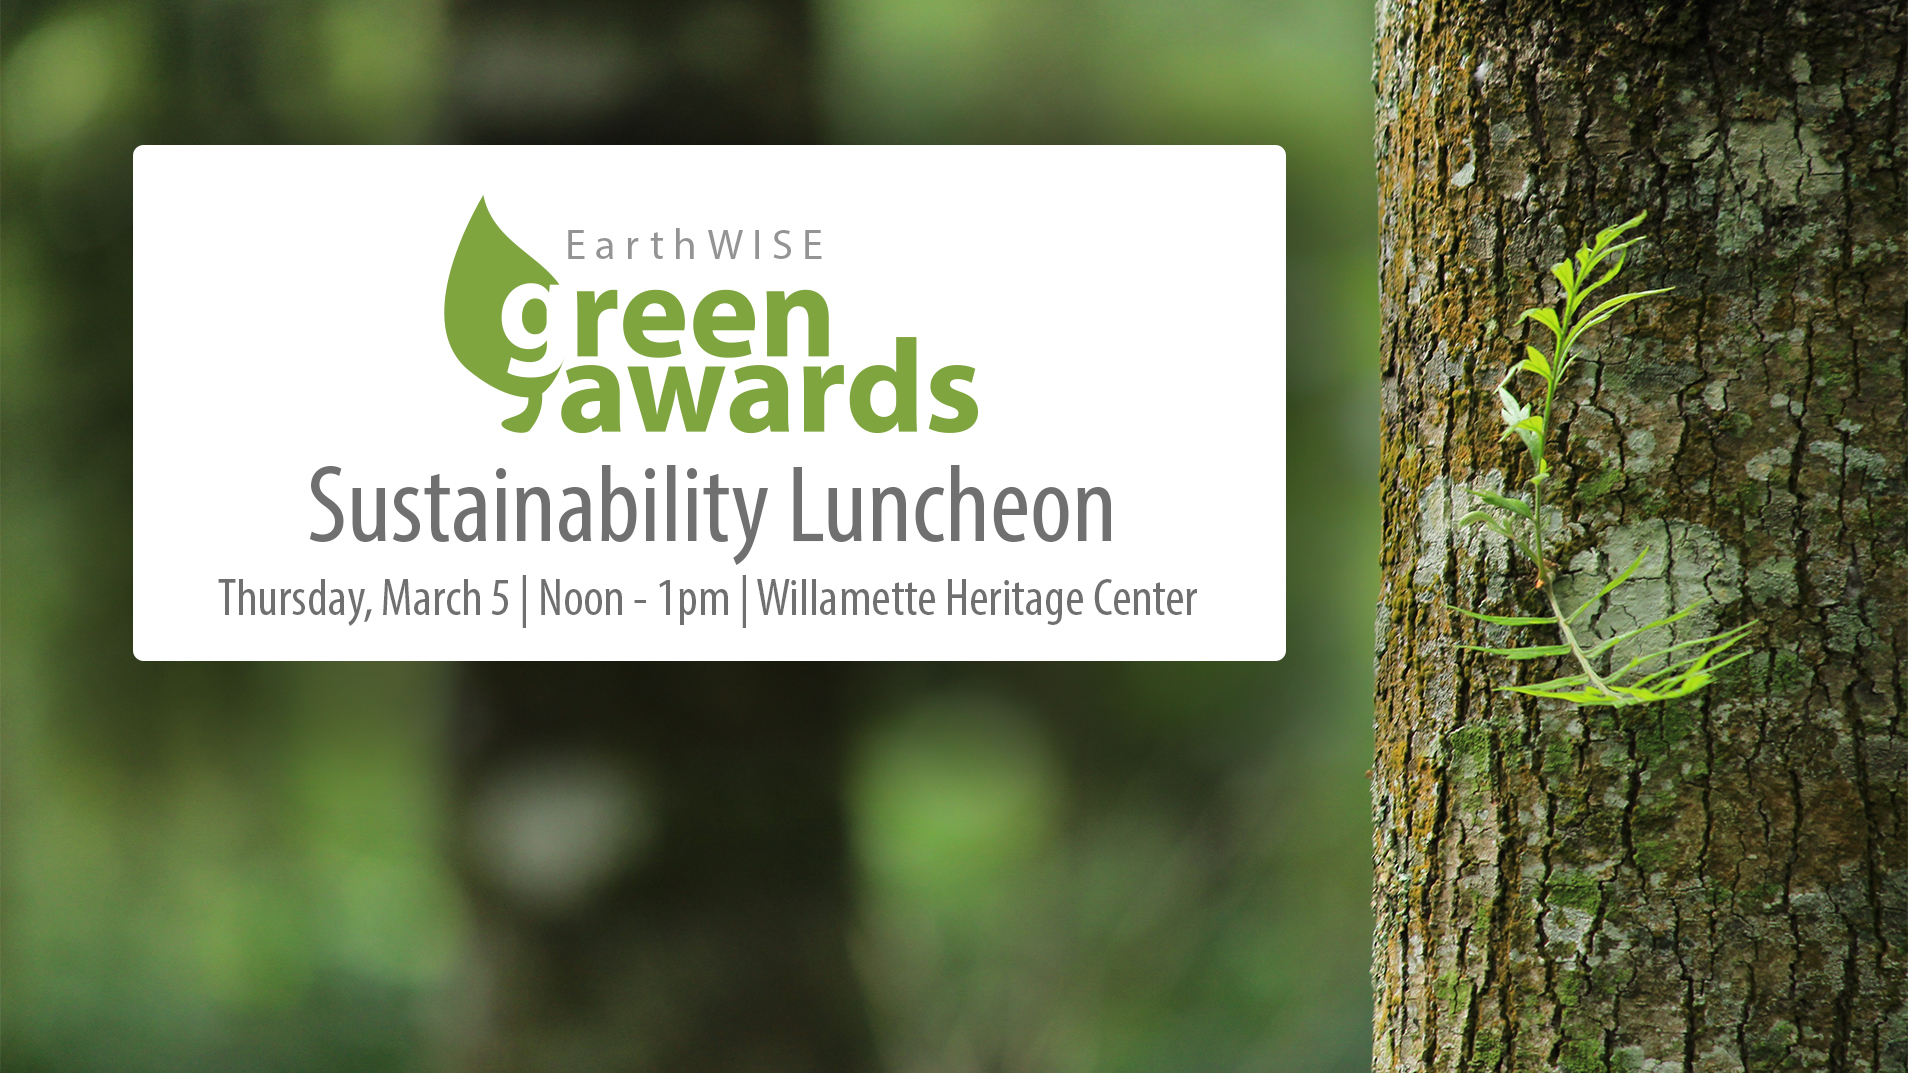 EarthWISE Green Awards and Sustainability Luncheon